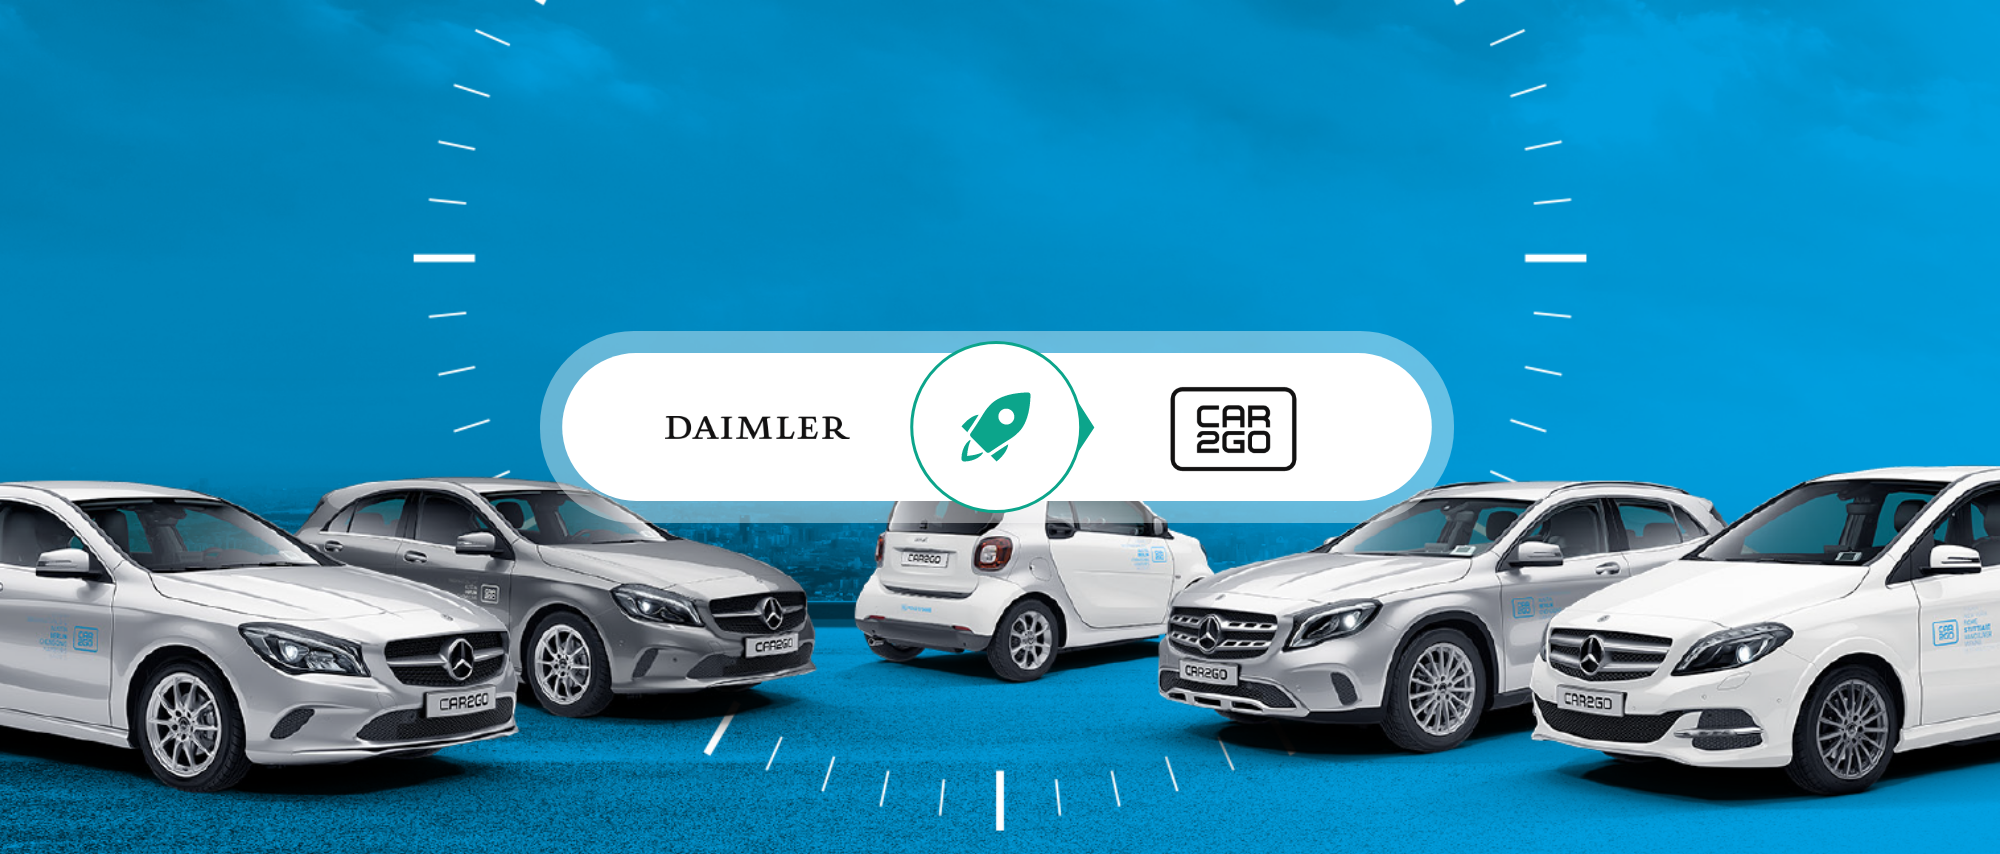 How Daimler Successfully Used Smart Car-Sharing